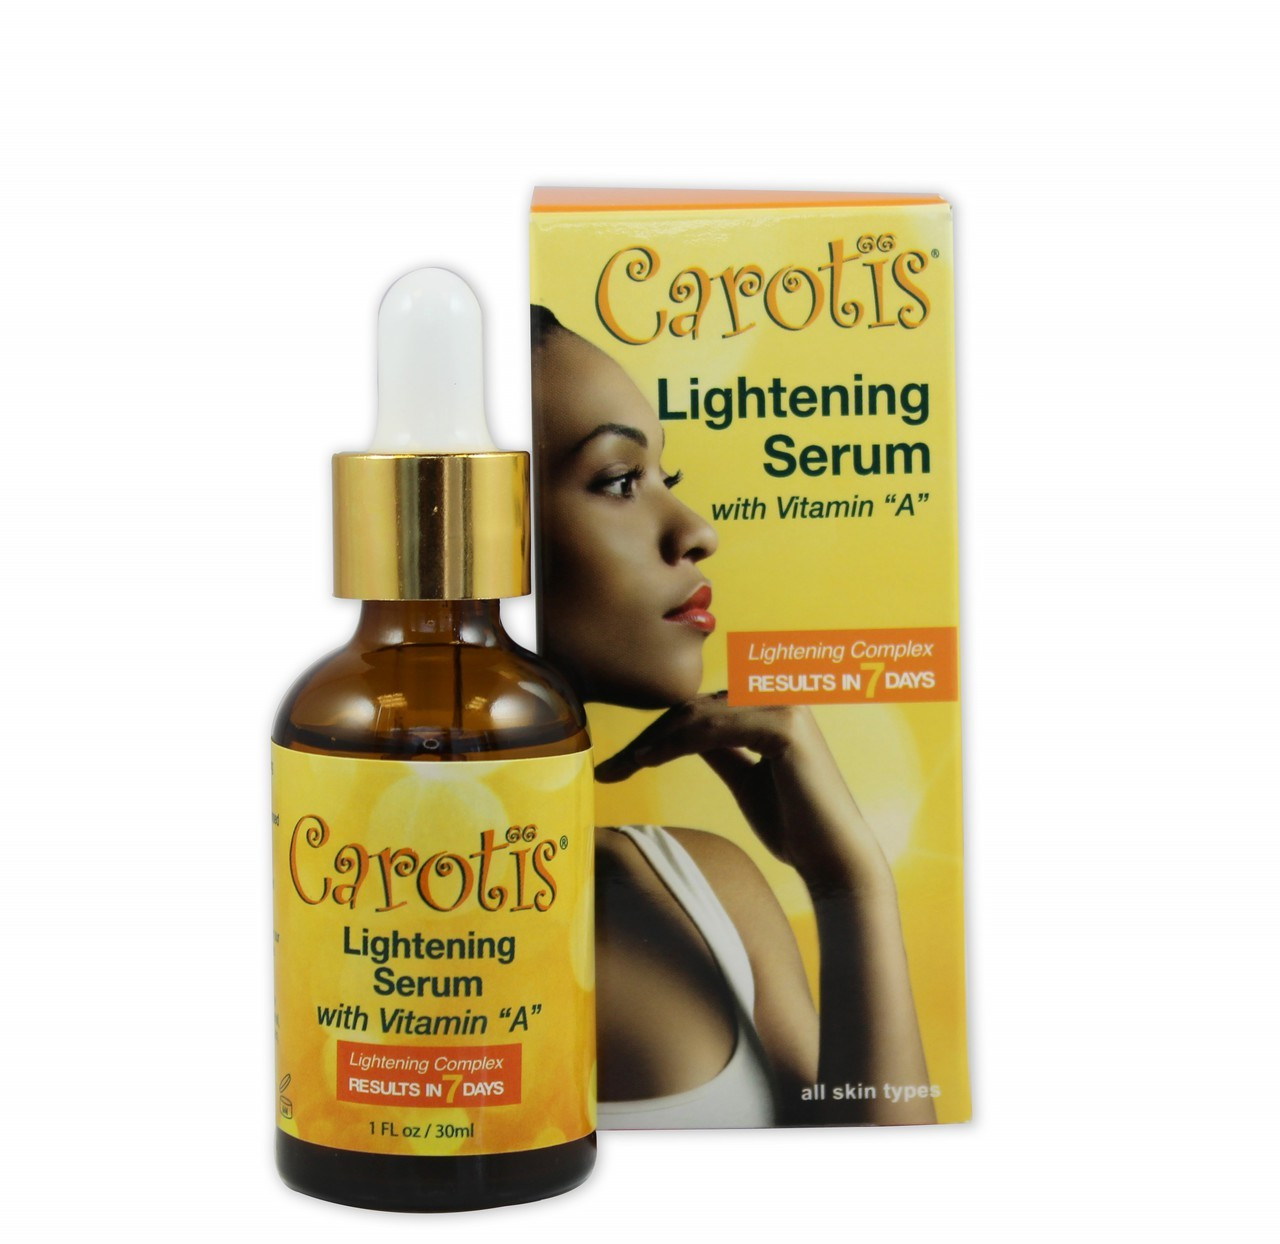 Carotis Lightening Serum 30ML